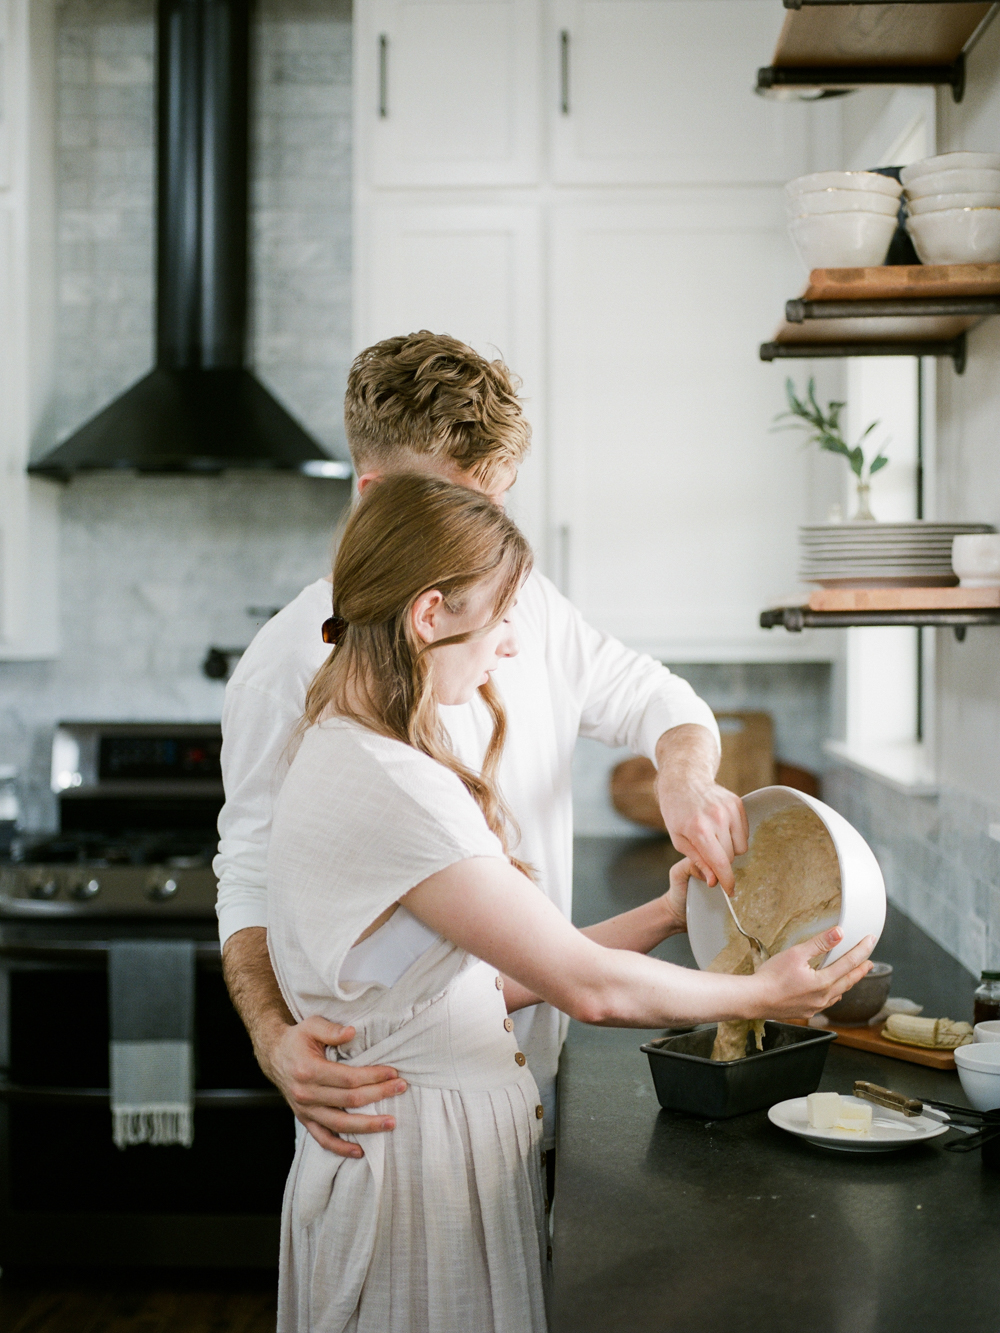 at home engagement session - Christine Gosch - featured on Magnolia Rouge - film photographer - elopement and intimate wedding photographer-11.jpg